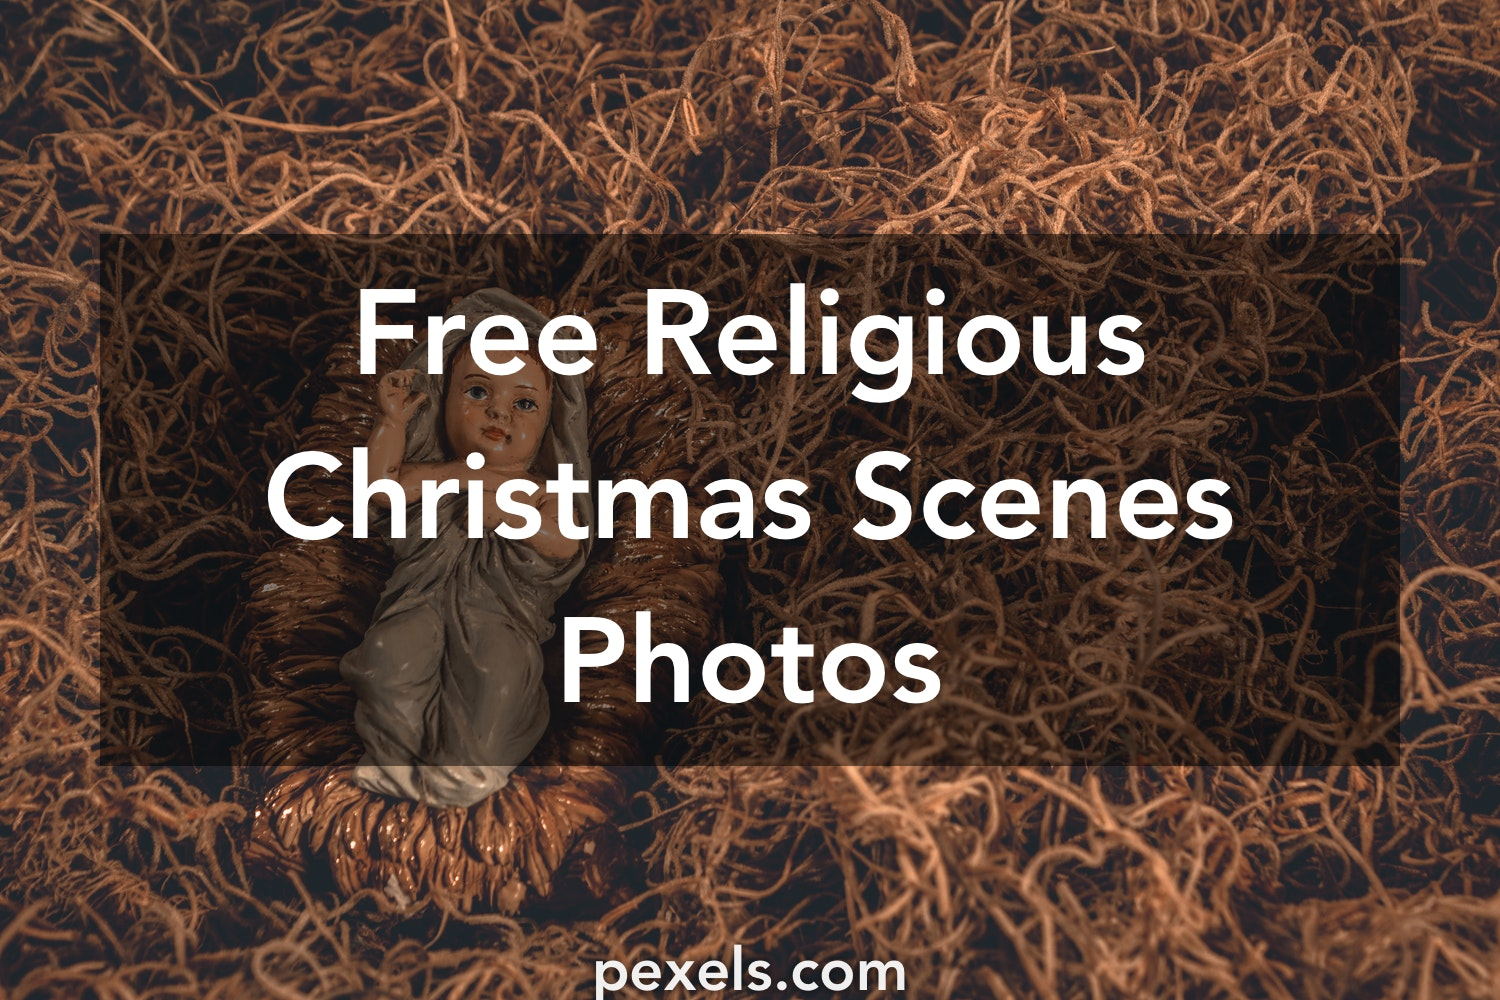 Religious Christmas Images.1000 Great Religious Christmas Scenes Photos Pexels